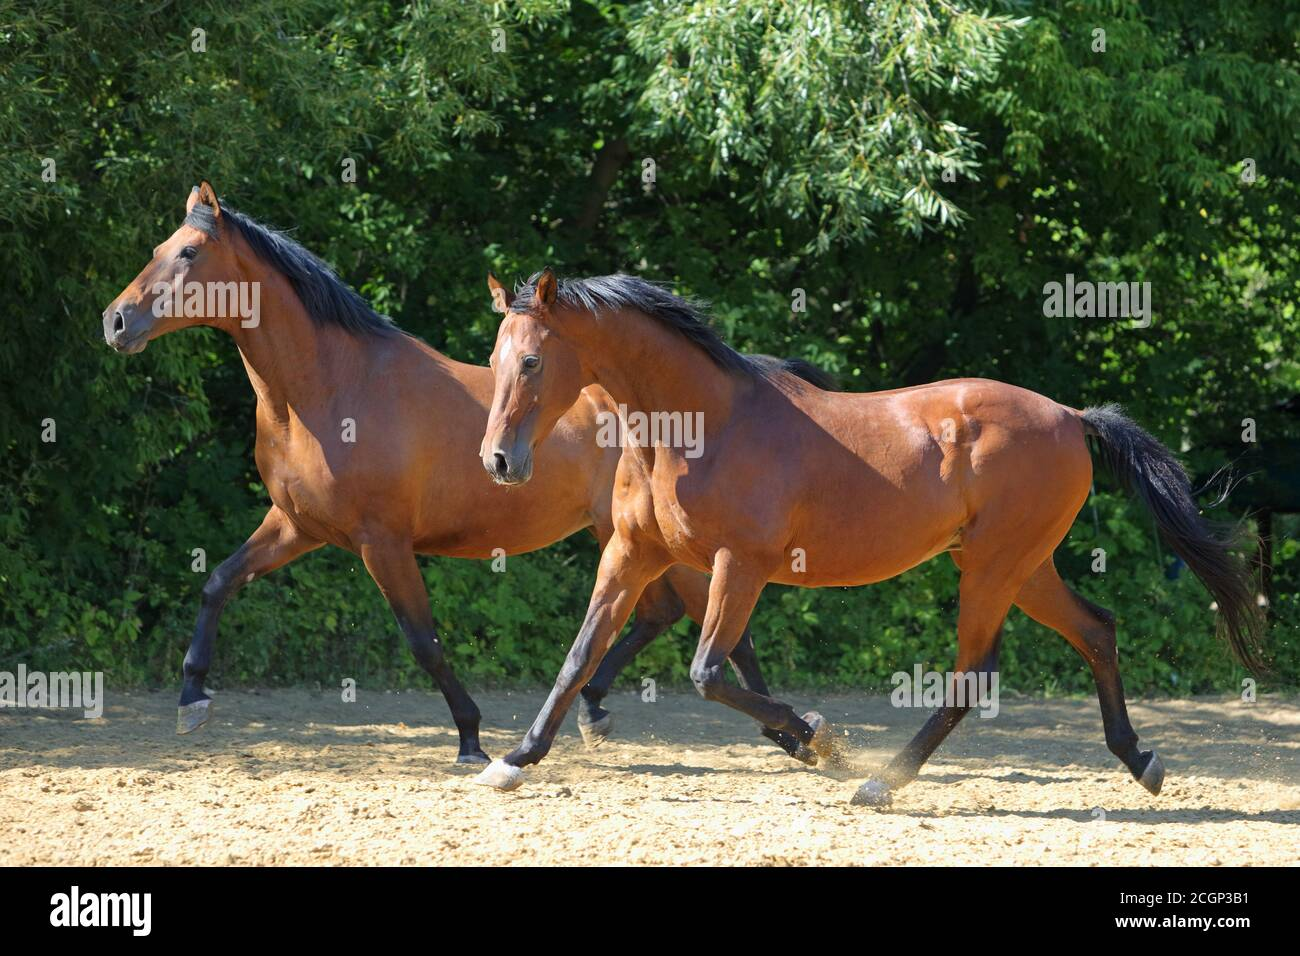 Two Horses Running High Resolution Stock Photography And Images Alamy